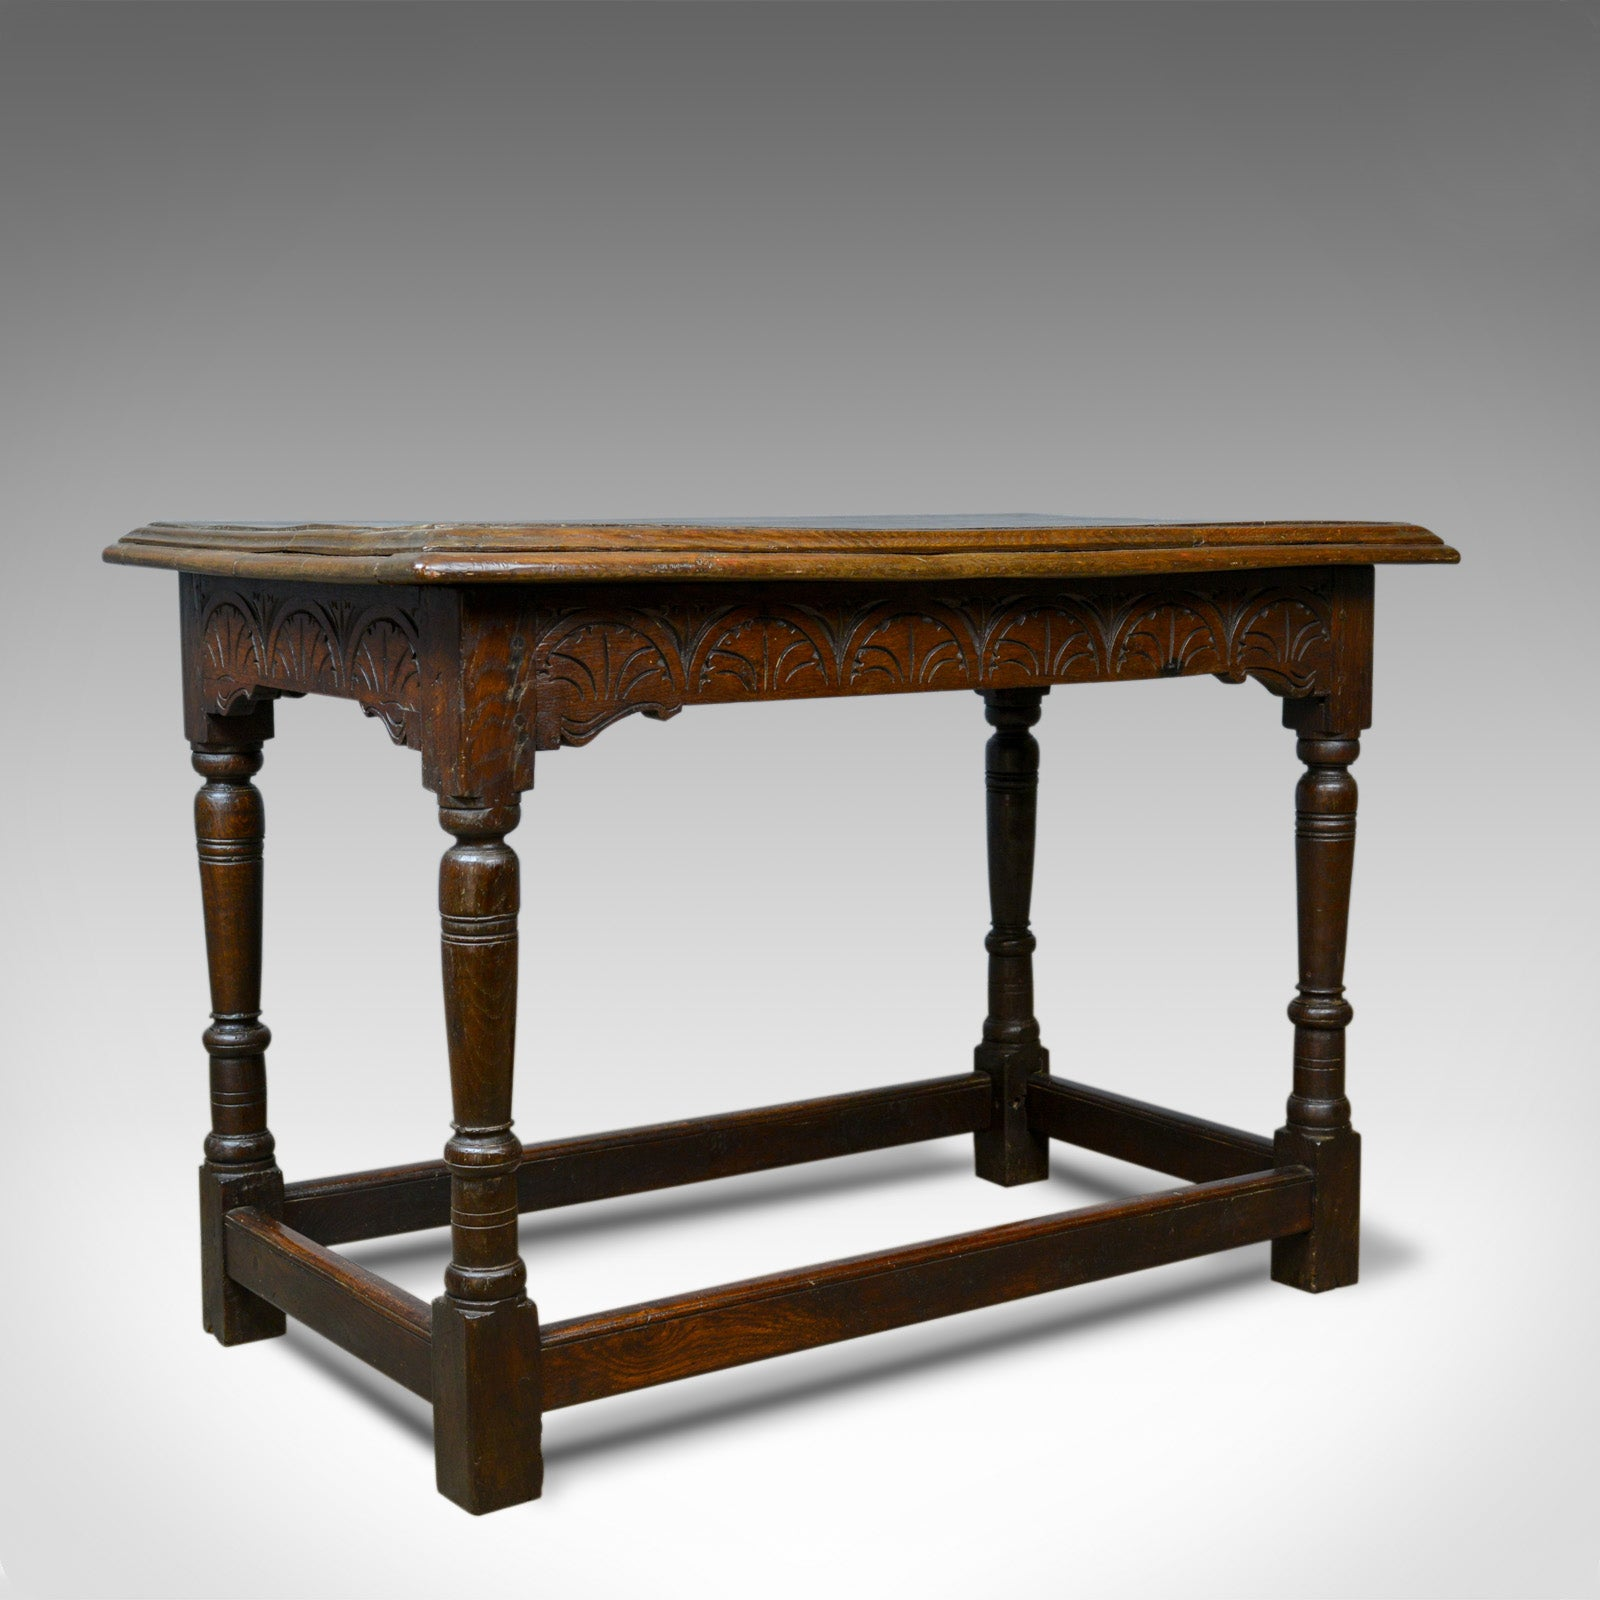 Picture of: Antique Oak Console Table English Jacobean Revival Refectory C18th And Later Ebay